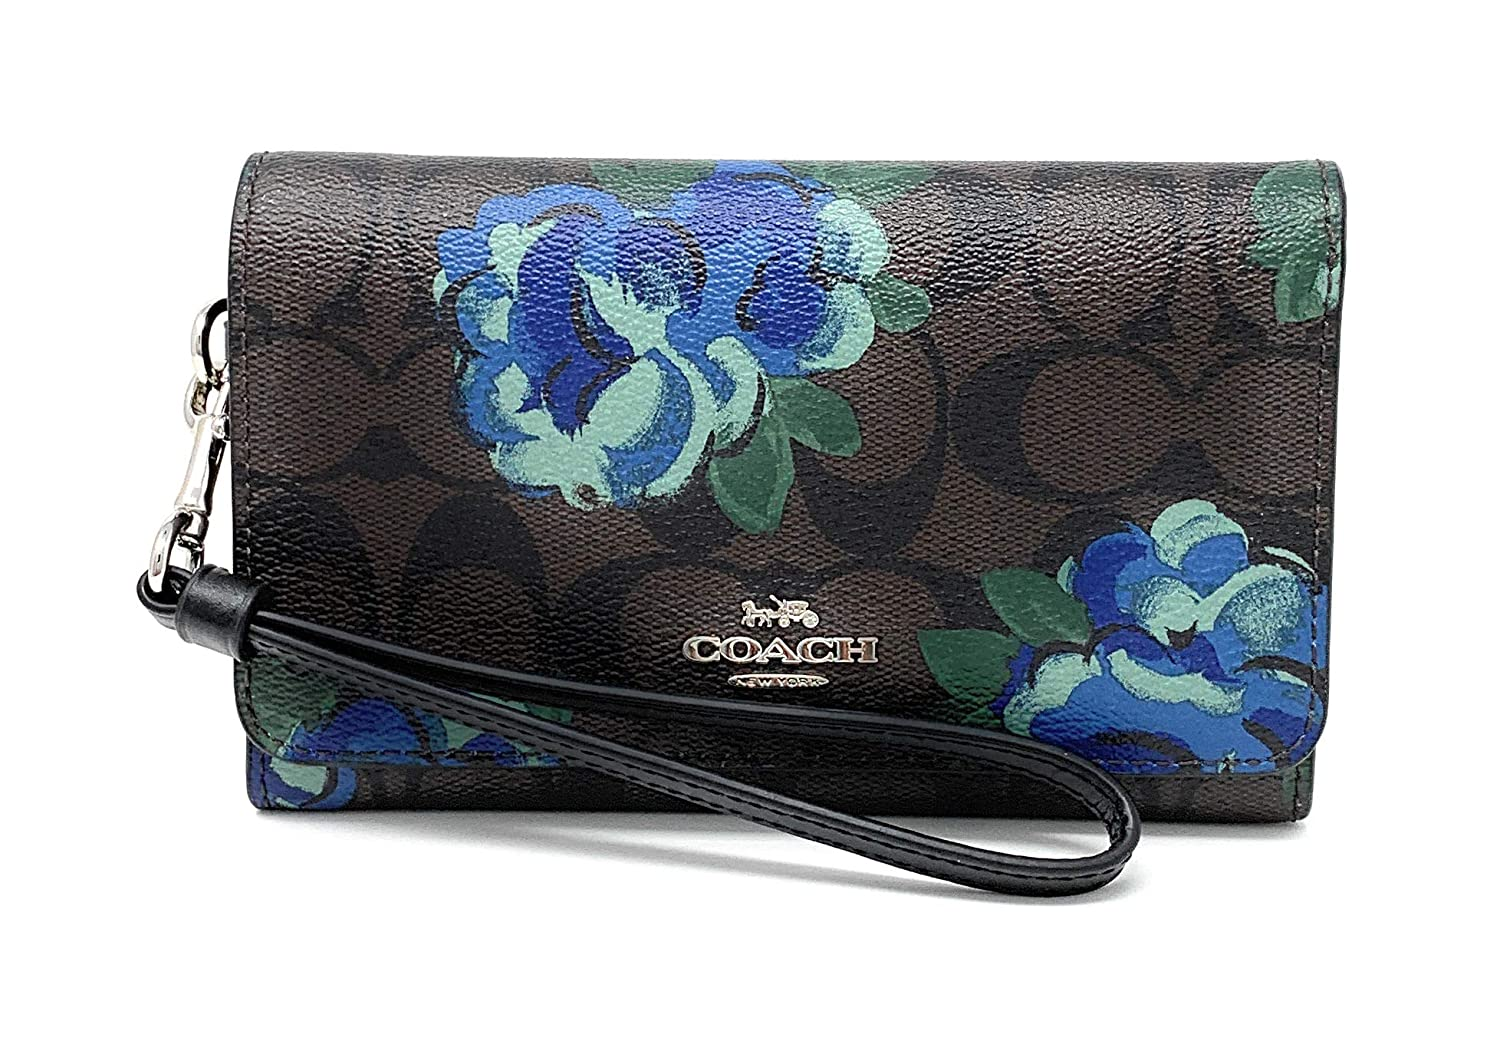 Coach Flap Phone Wallet In Signature Canvas With Jumbo Floral Print (BROWN  BLACK MULTI SILVER) at Amazon Women s Clothing store  2f5158728a27b